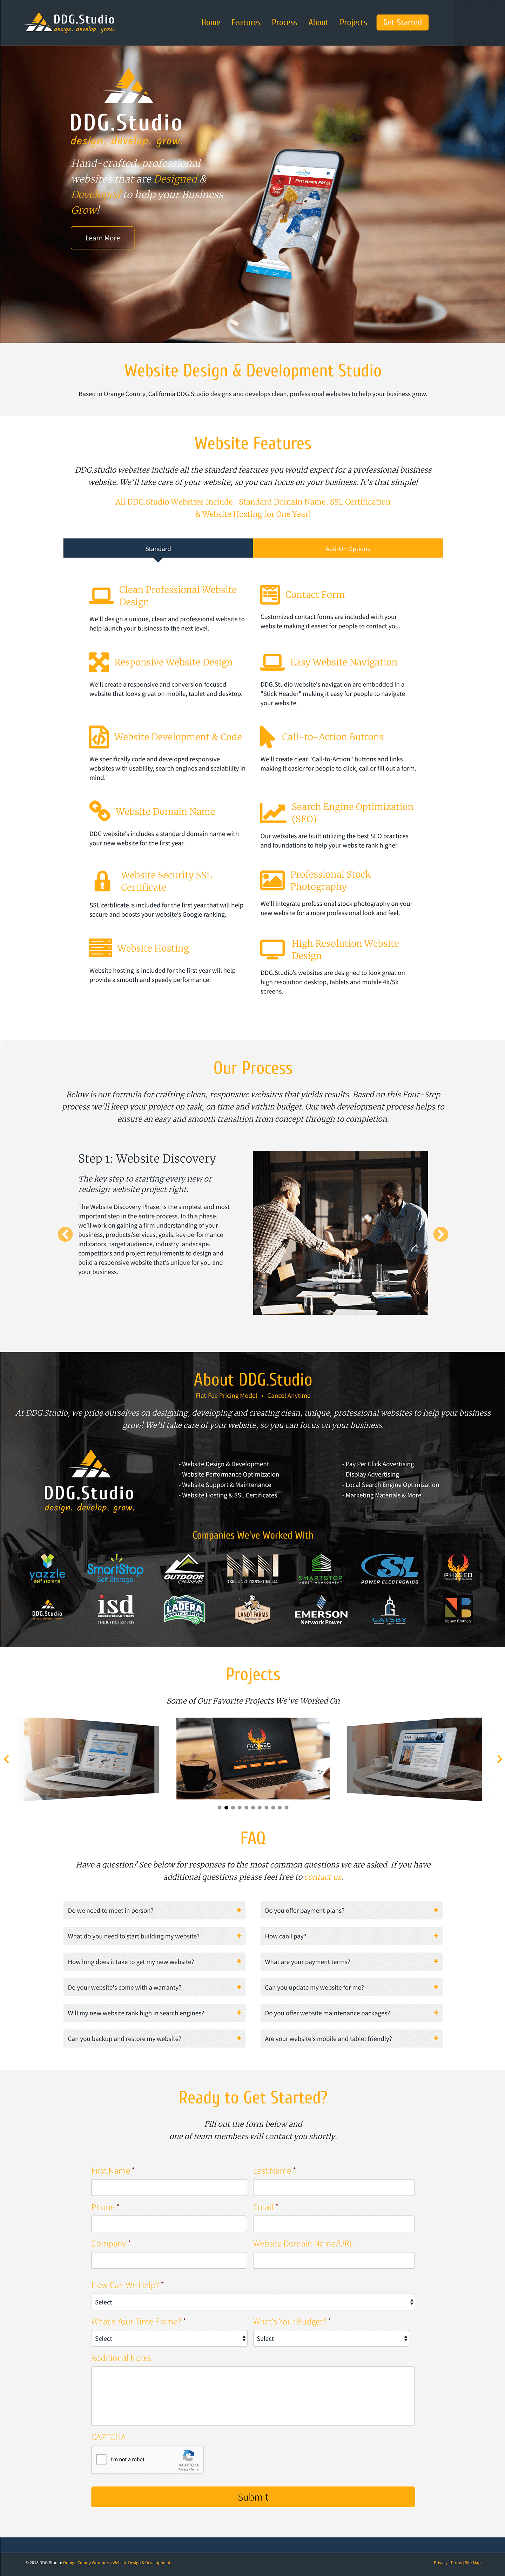 DDG-Studio-Responsive-One-Page-Website-Design-Web-Home-Page